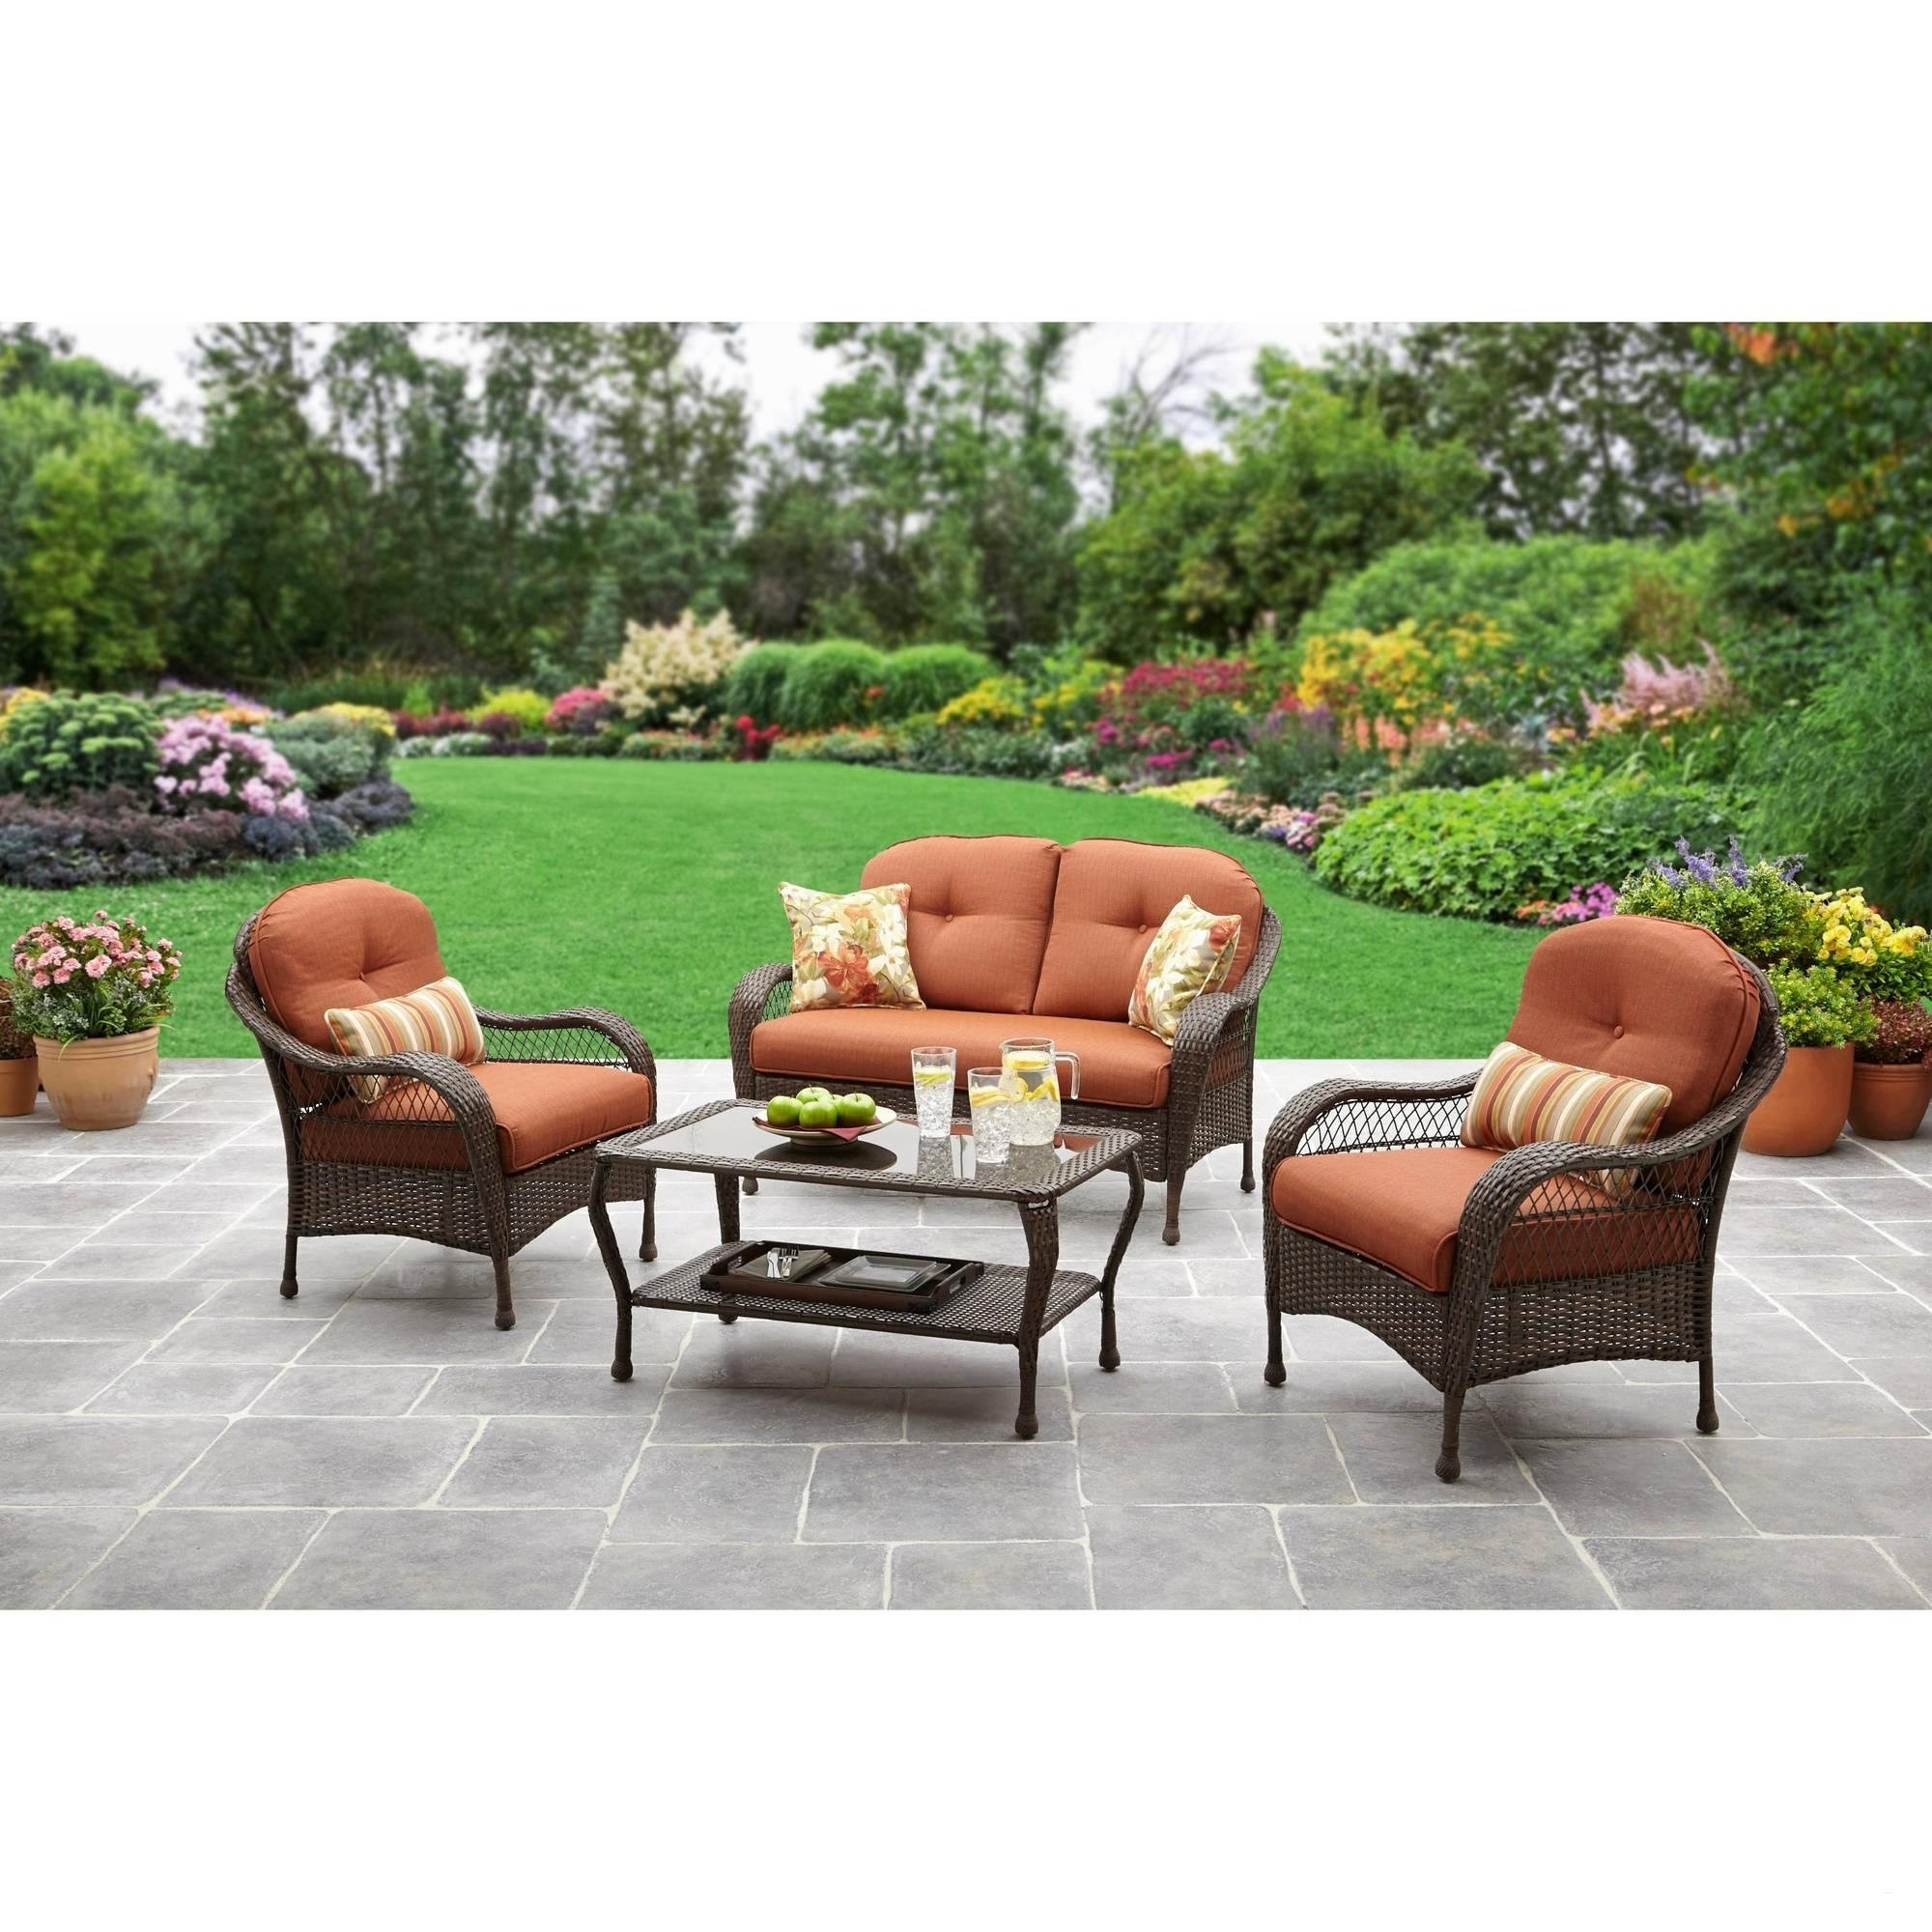 2018 Patio Furniture Conversation Sets At Home Depot Throughout Home Depot Patio Furniture Amazon Outdoor Furniture Patio Furniture (View 8 of 15)